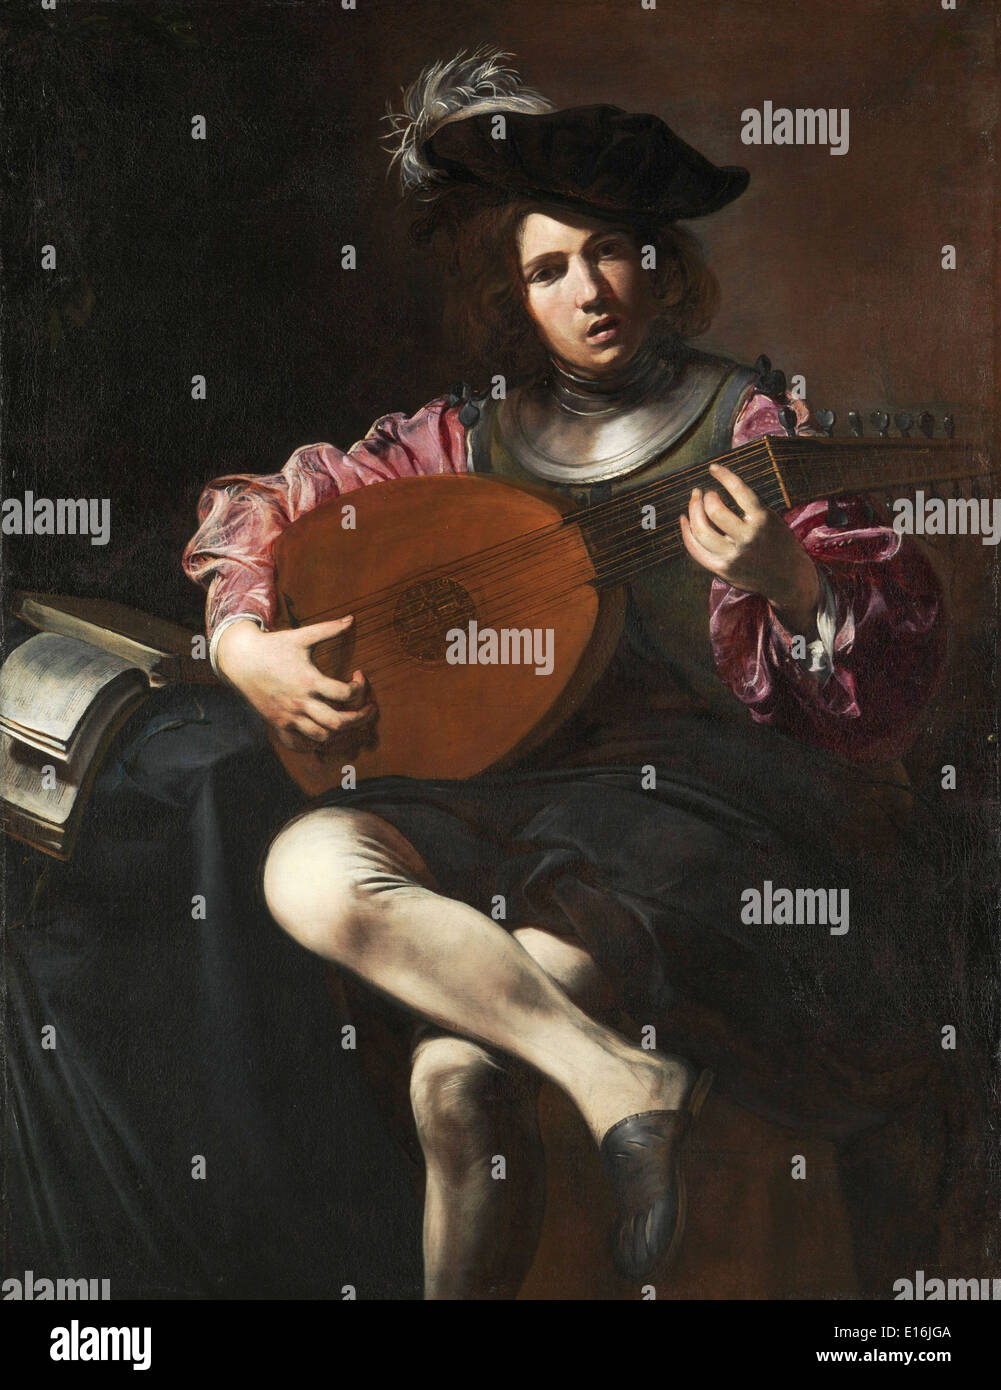 Lute Player by Valentin de Boulogne, 1626 - Stock Image